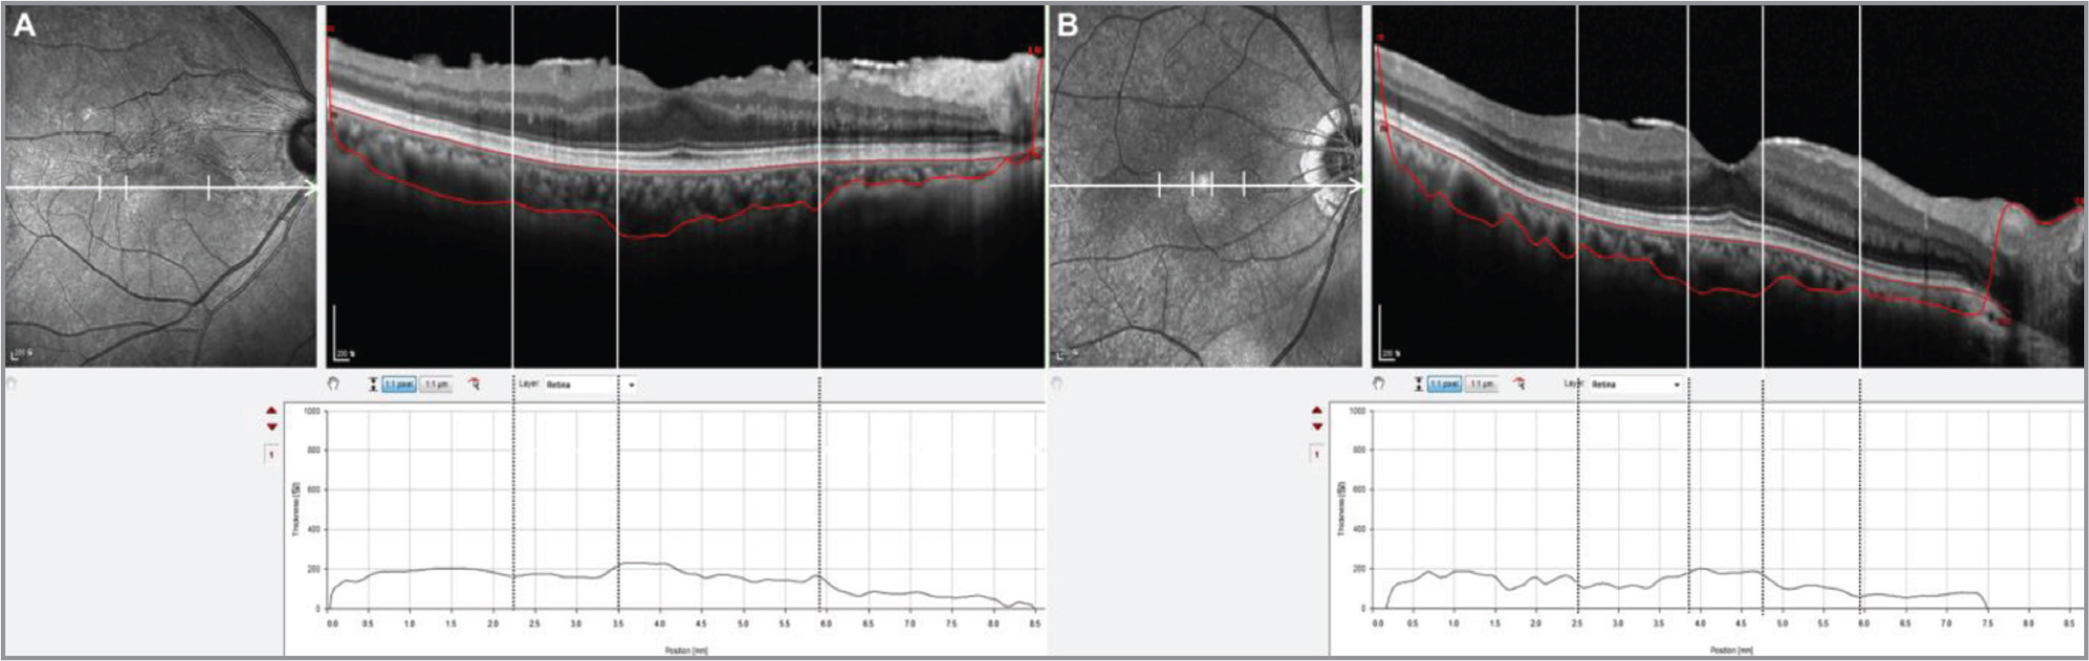 Choroidal thickness map thickness map showing a topographical association between the presence of hyperreflective epiretinal membrane (ERM) and a decrease in choroidal thickness in the corresponding region. Combination images of an en face infrared section and a horizontal enhanced depth B-scan of spectral-domain optical coherence tomography (OCT). The macular choroidal thickness was automatically measured at each each point from the horizontal scan. A 68-year-old female patient (A) and a 72-year-old male patient (B) with ERM in their right eyes demonstrated irregular choroid/sclera boundaries. The choroidal thickness of the region, where thick hyperreflective ERM is seen on OCT image (designated by the vertical lines), appears to be relatively thinner than other regions without hyperreflective ERM. The basement membrane and choroid-scleral boundary were indicated by the upper and lower red lines in the image, respectively. Horizontal scale bar 200 µm.